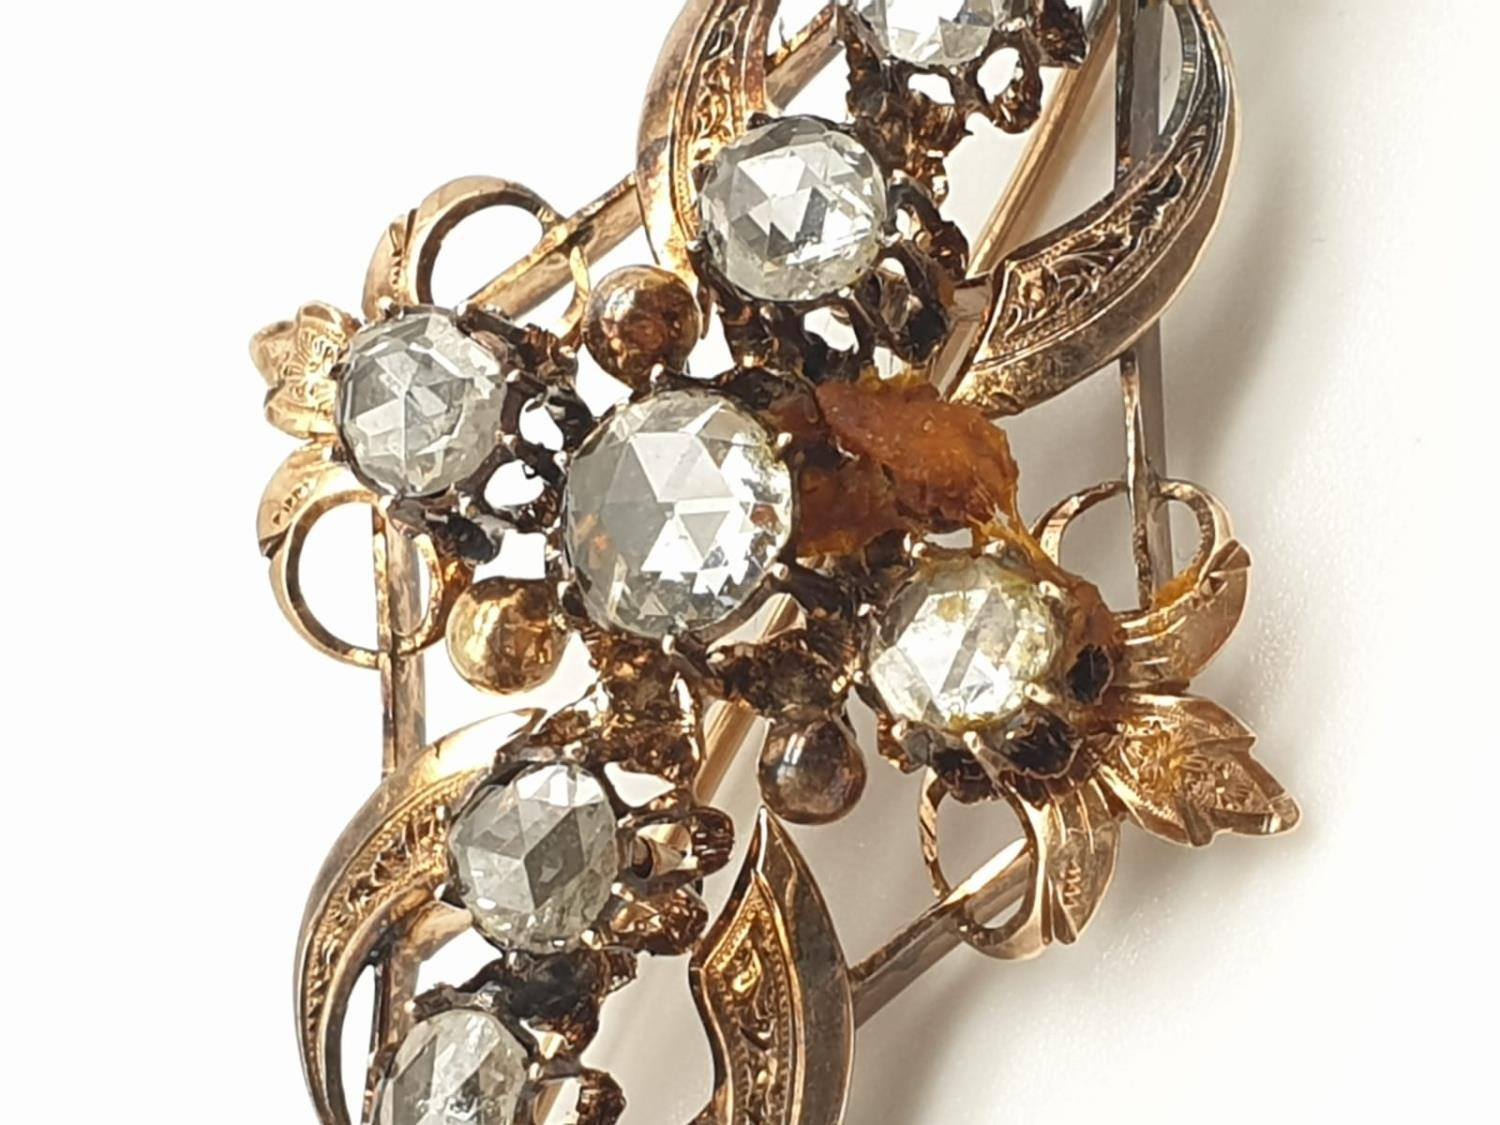 Impressive Antique Edwardian rose gold brooch with over 3ct of rose diamonds, weight 9.1g and 7cm - Image 2 of 5